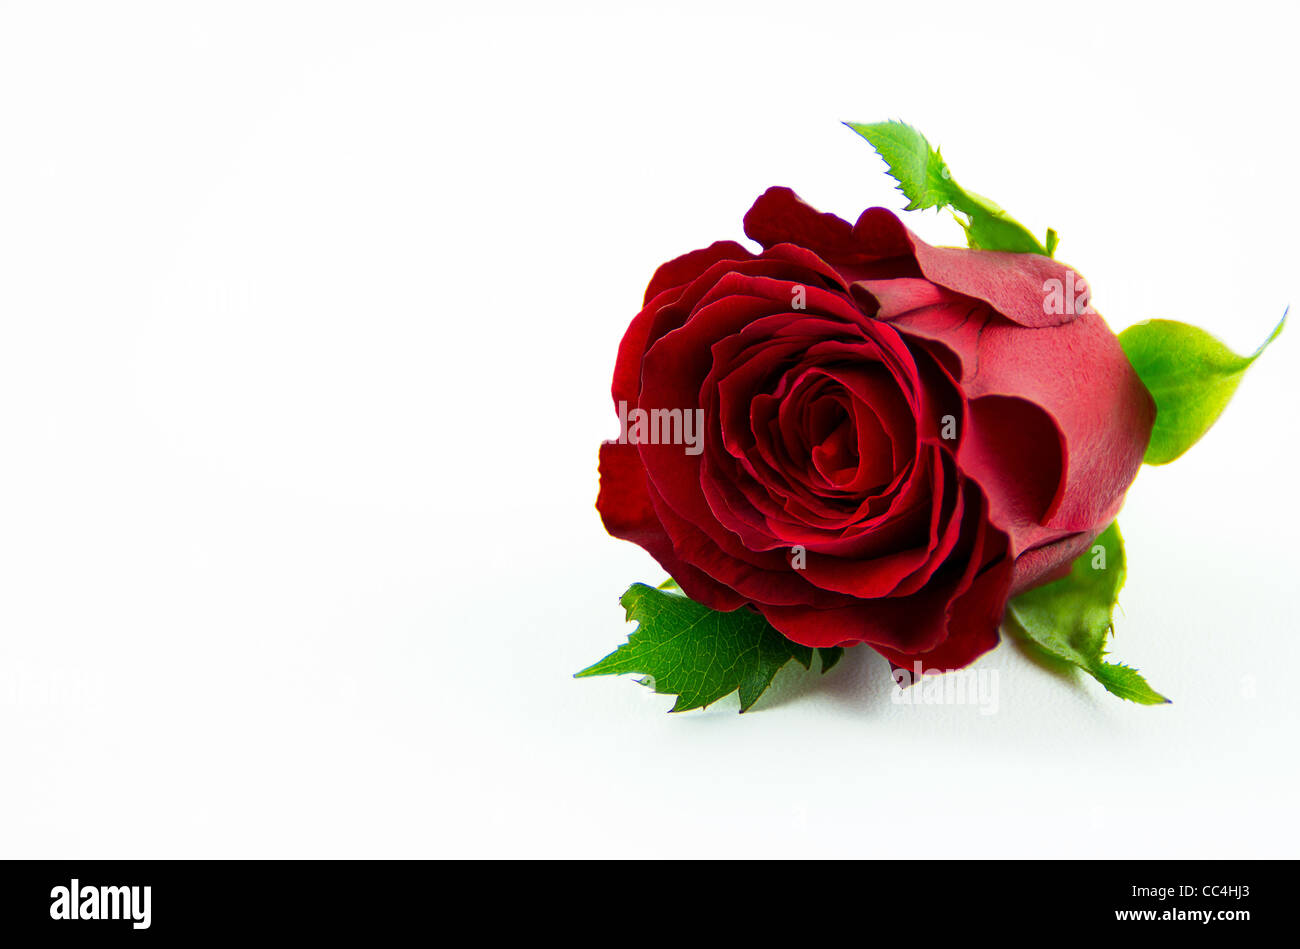 Anglais floral rose rouge Photo Stock